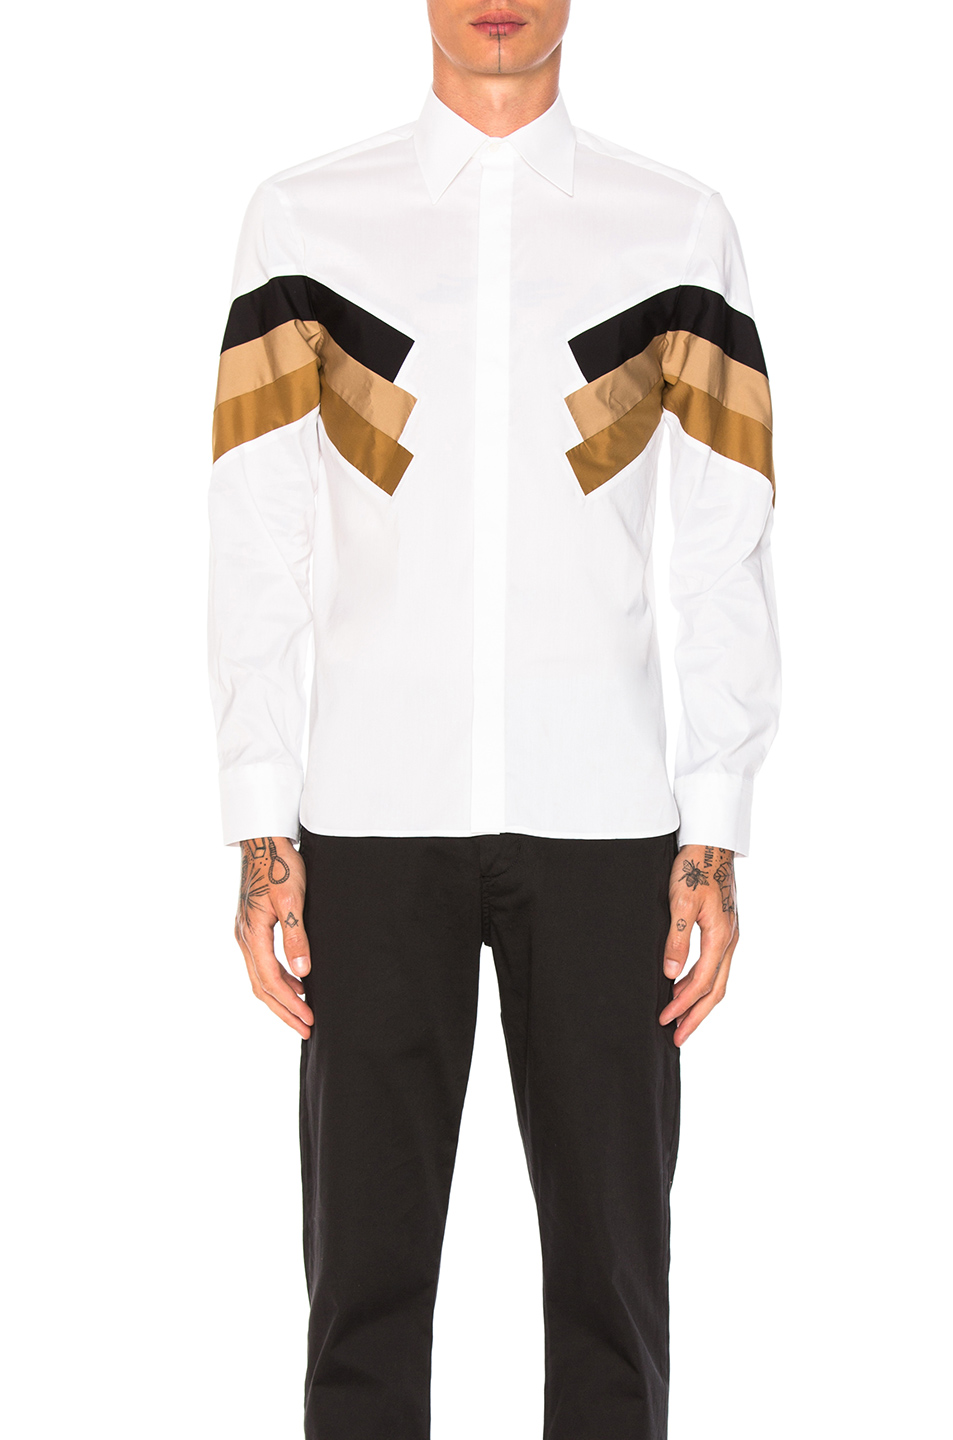 Neil Barrett Modernist Poplin Shirt in Brown,Black,Stripes,White